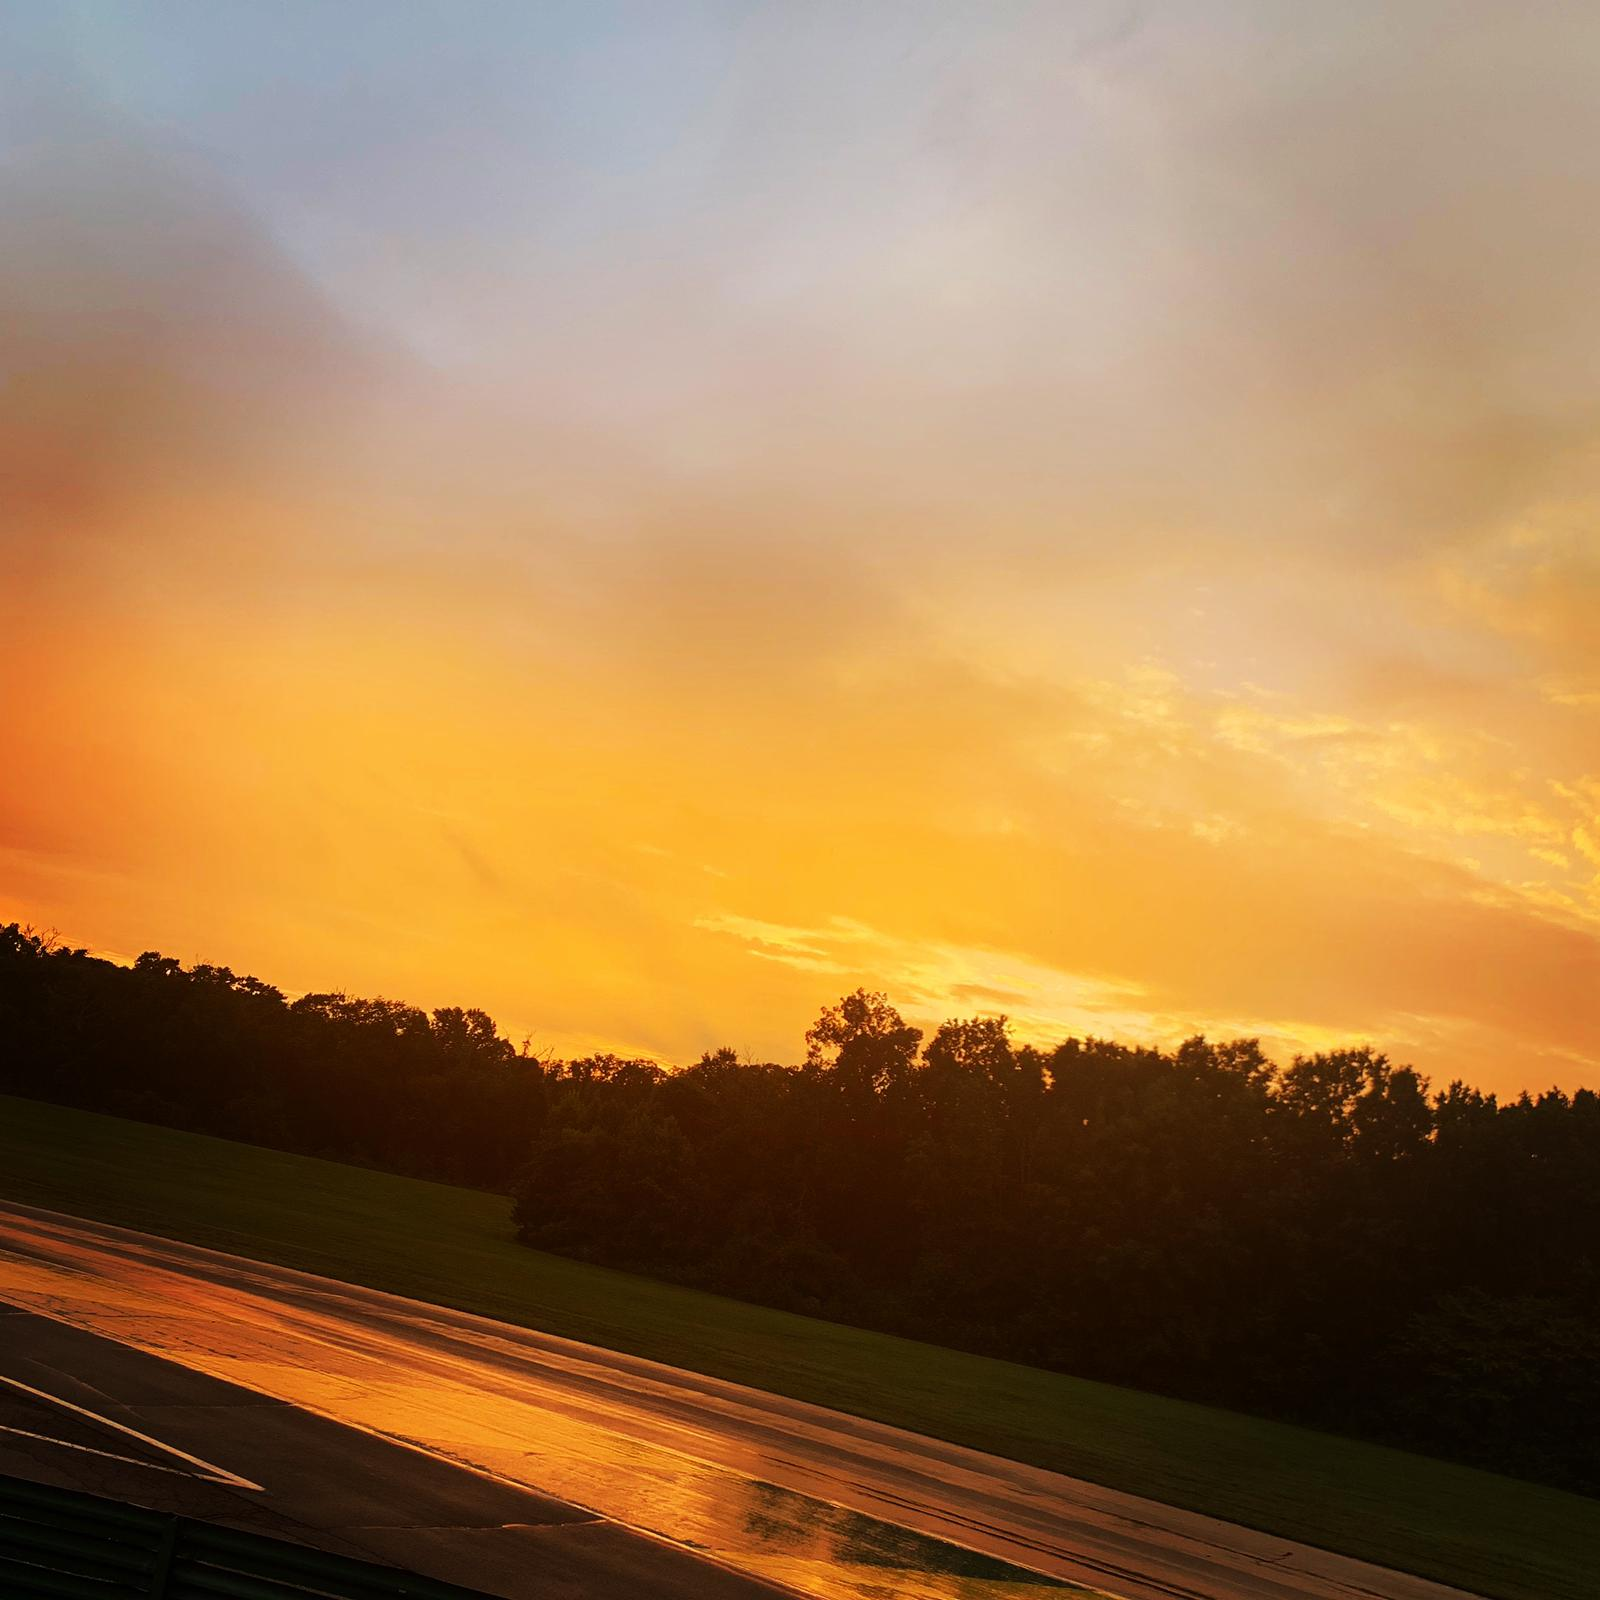 We had beautiful weather at VIR, albeit HOT all week, with the occasional evening shower.